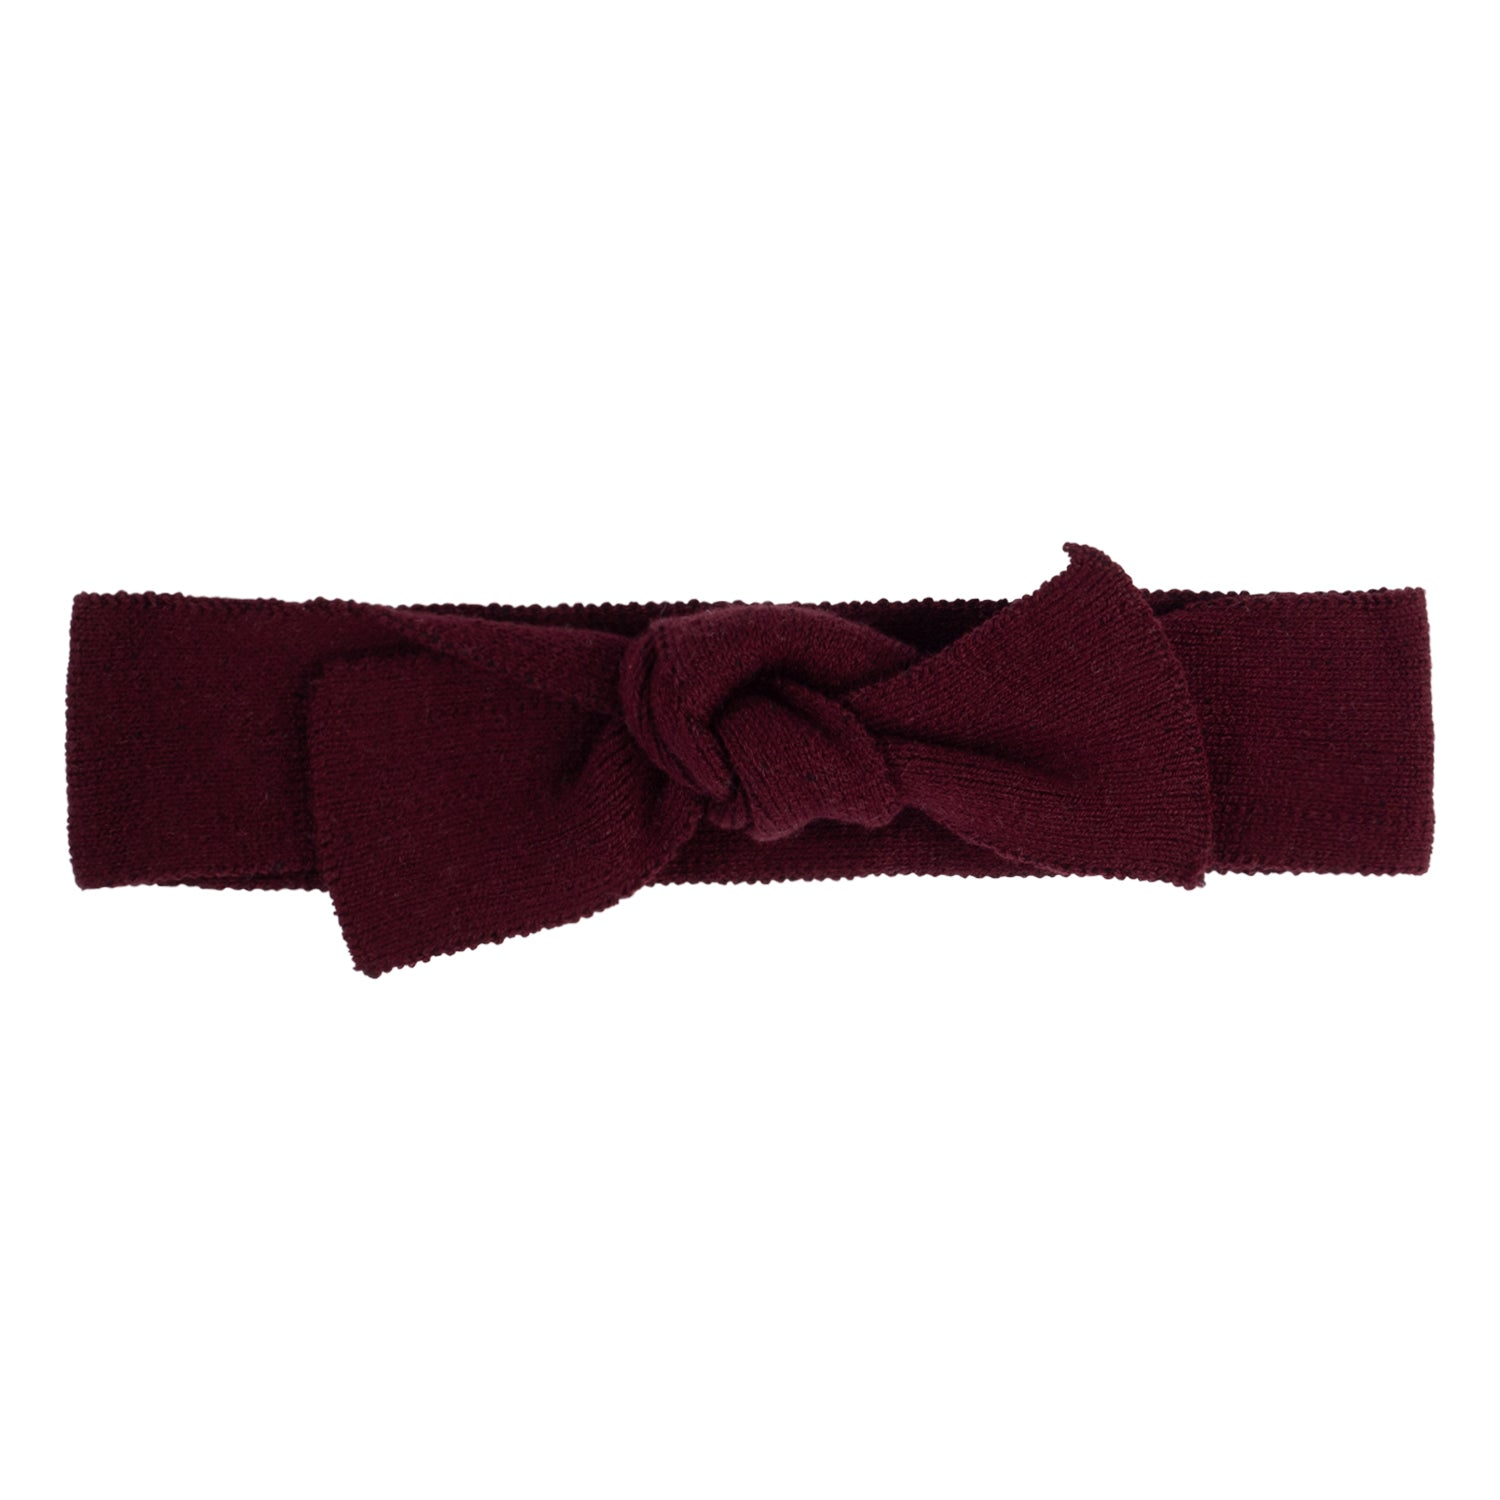 Bow Headbands ~ Burgundy